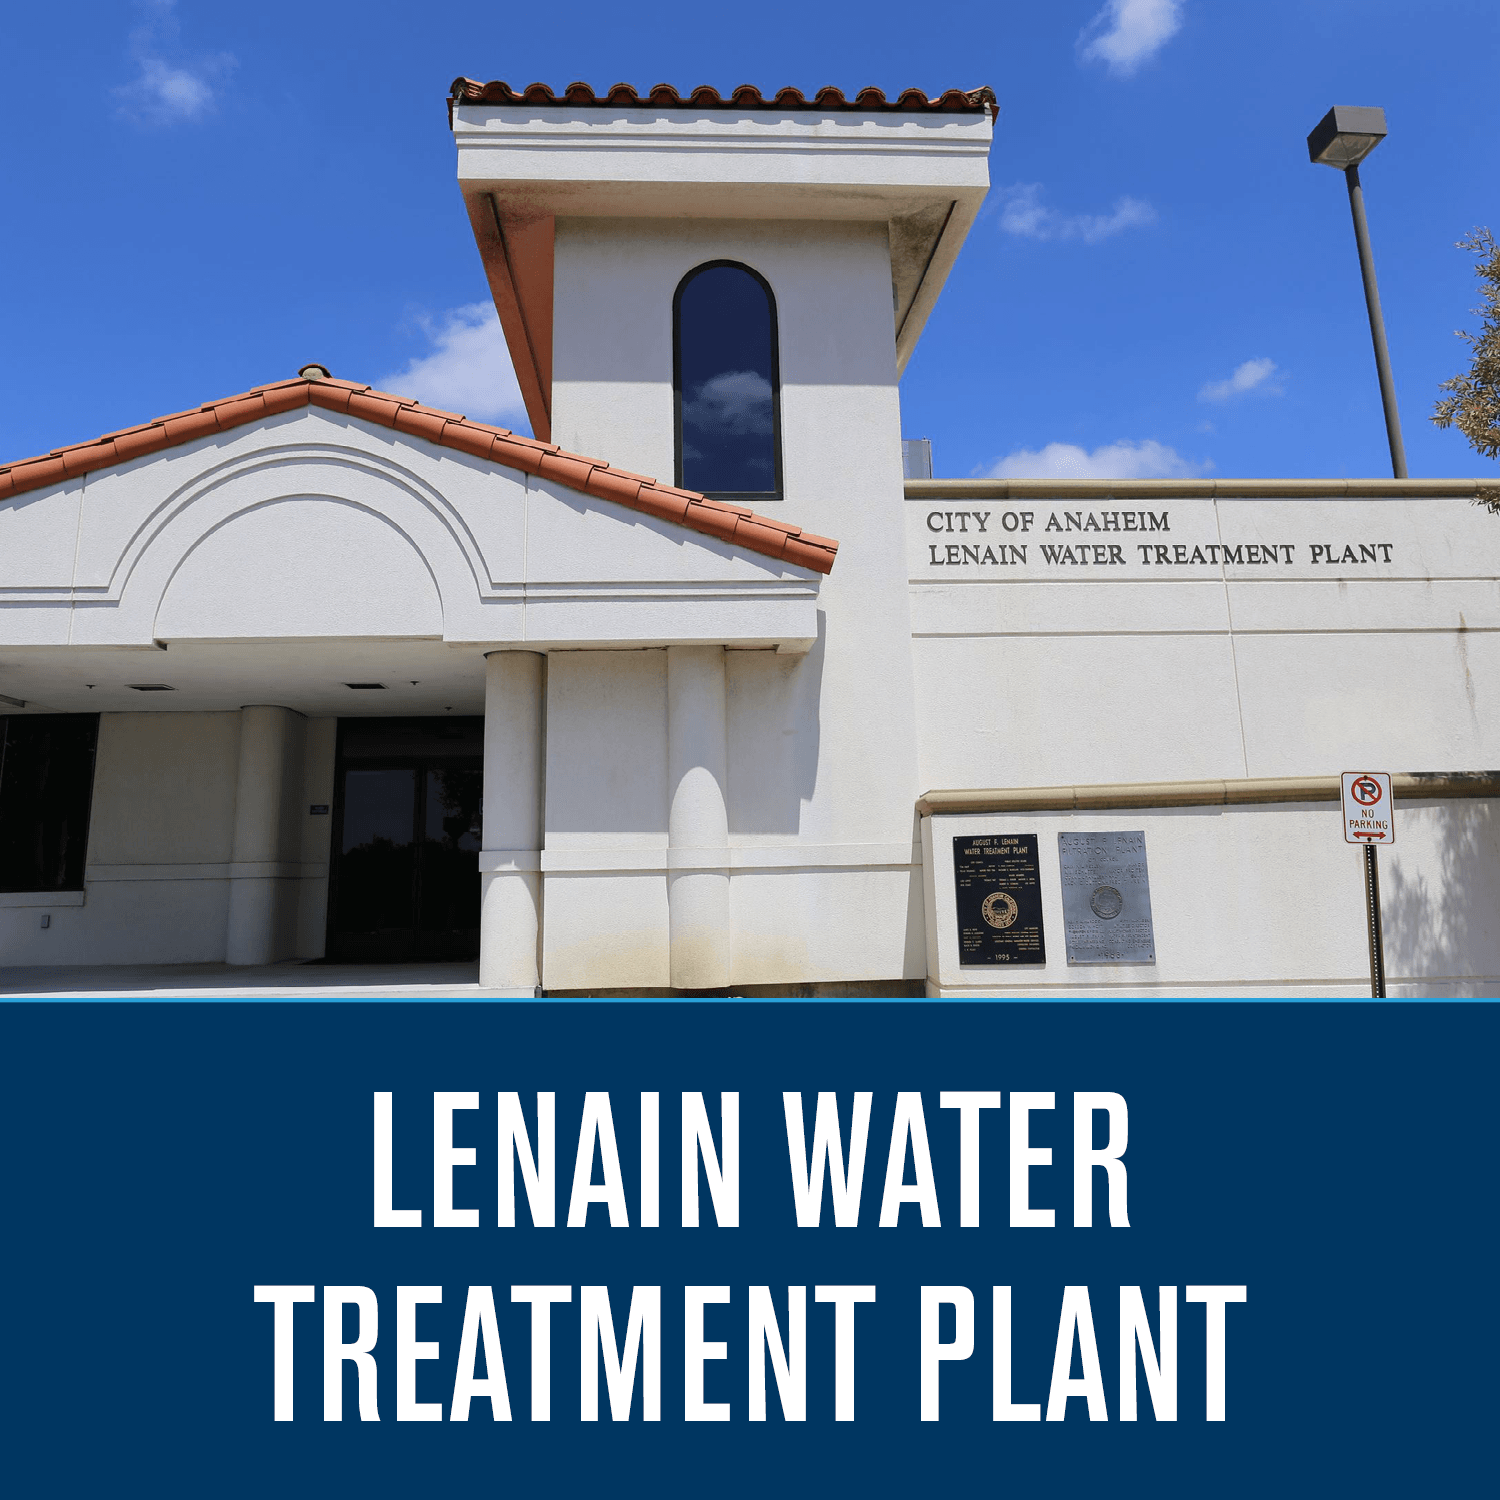 Lenain Water Treatment Plant